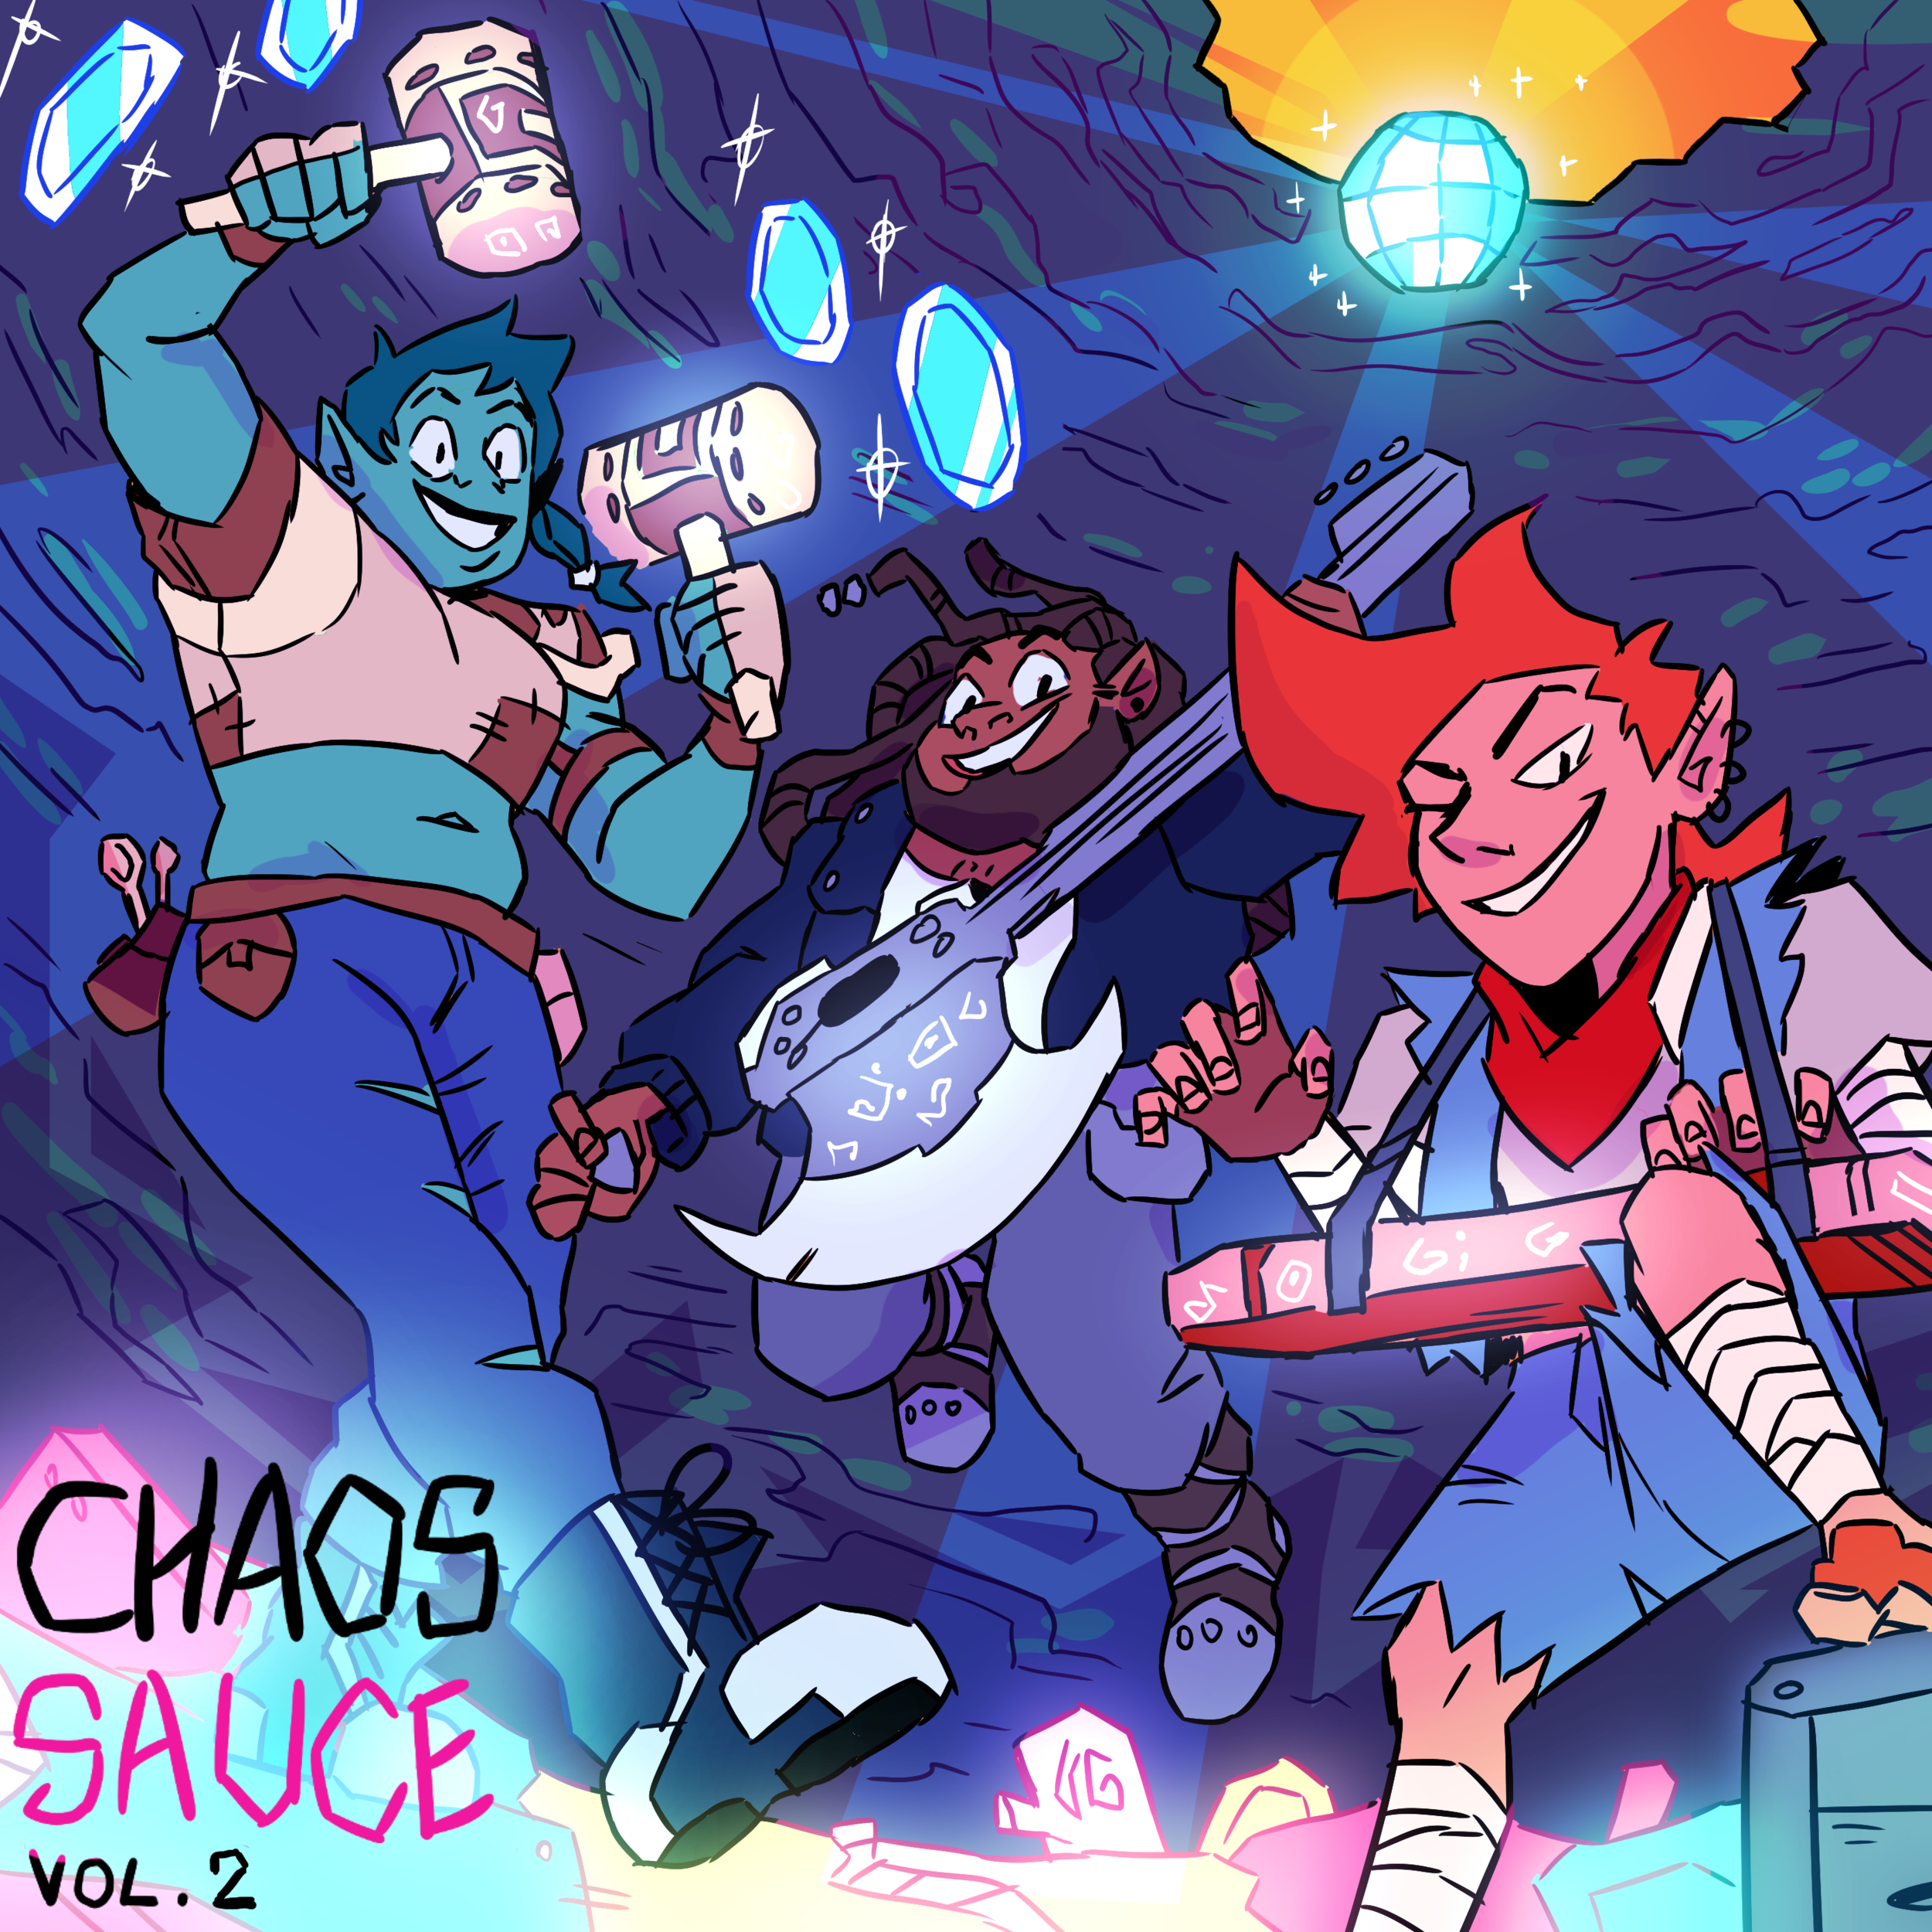 Chaos Sauce Vol 2 Album Art.PNG